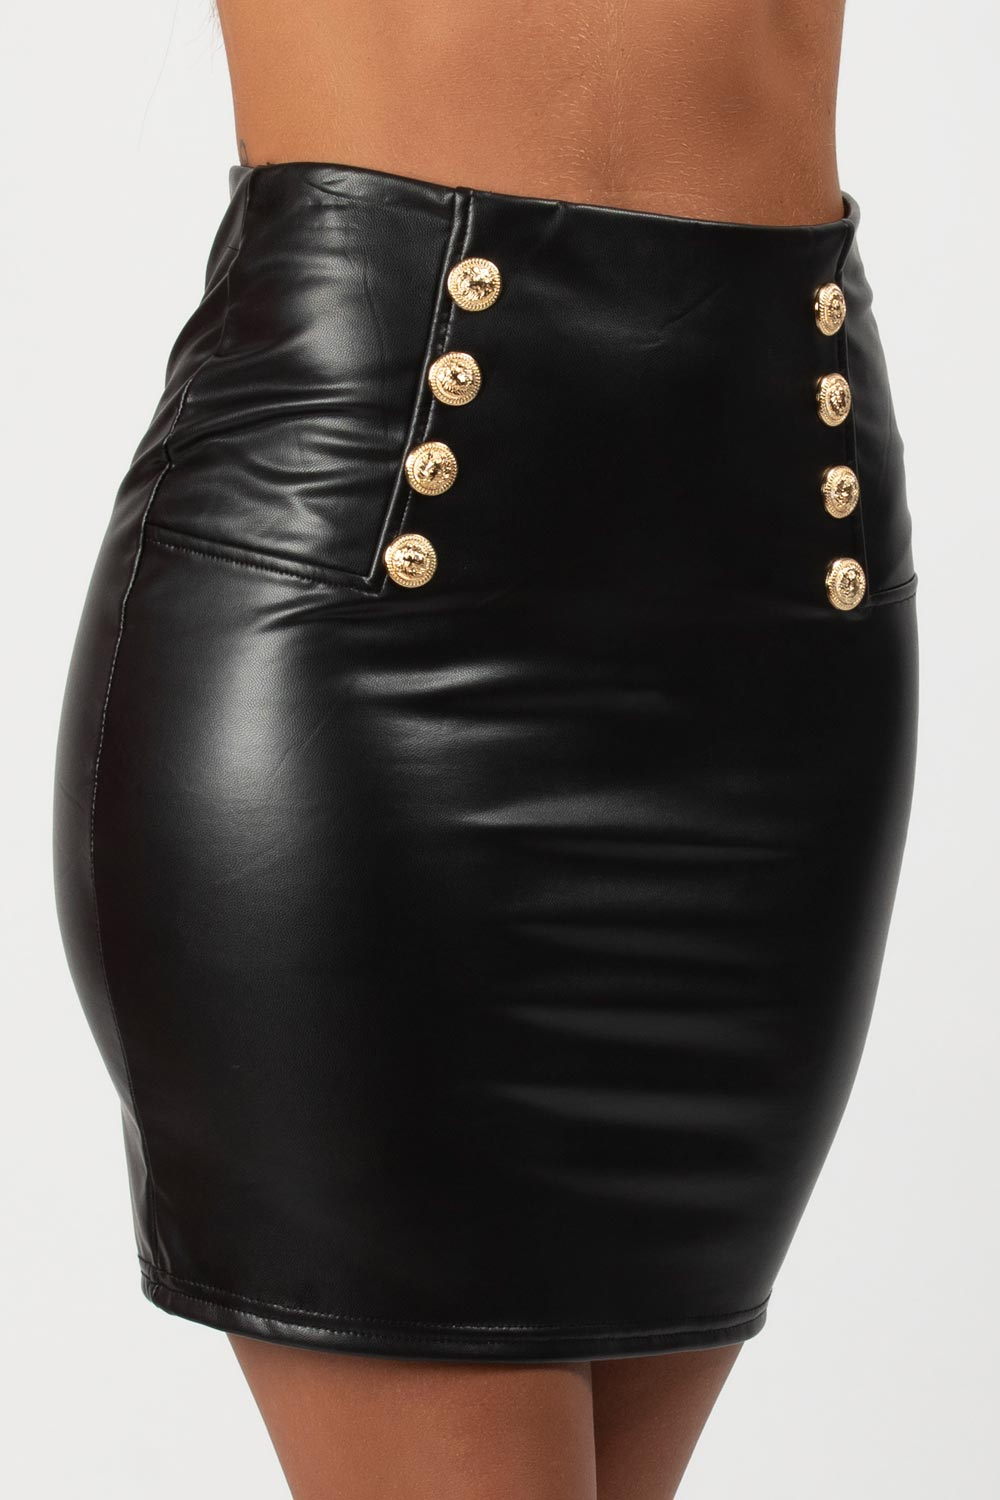 Black Vegan Leather Mini Skirt With Gold Button Detail